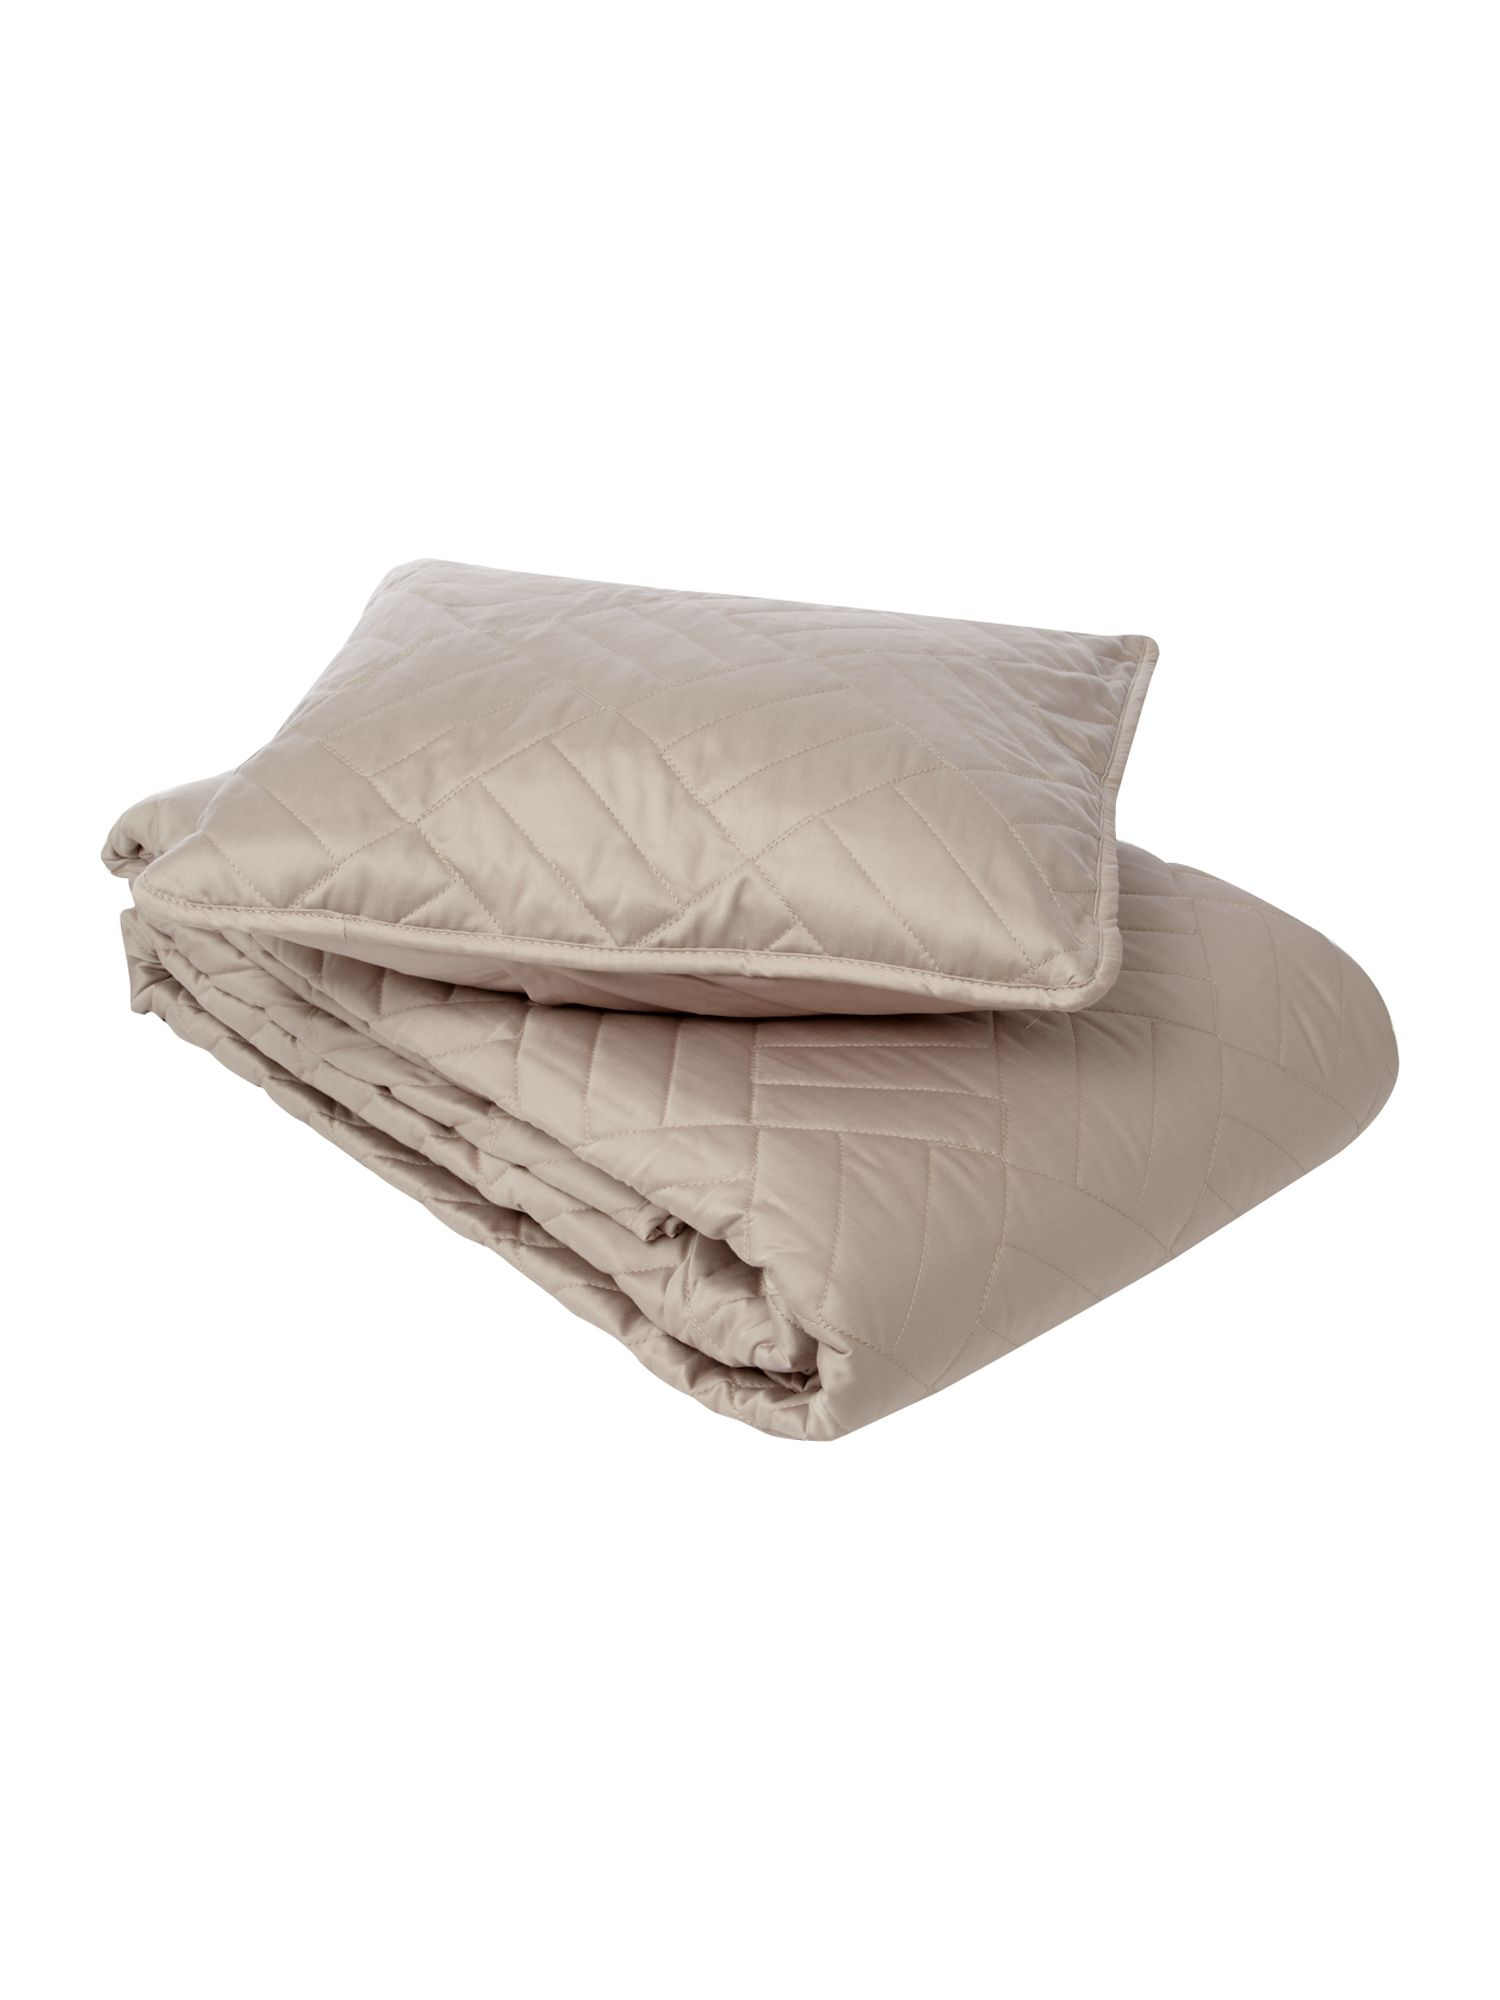 Quilted bedcover and cushion in oyster